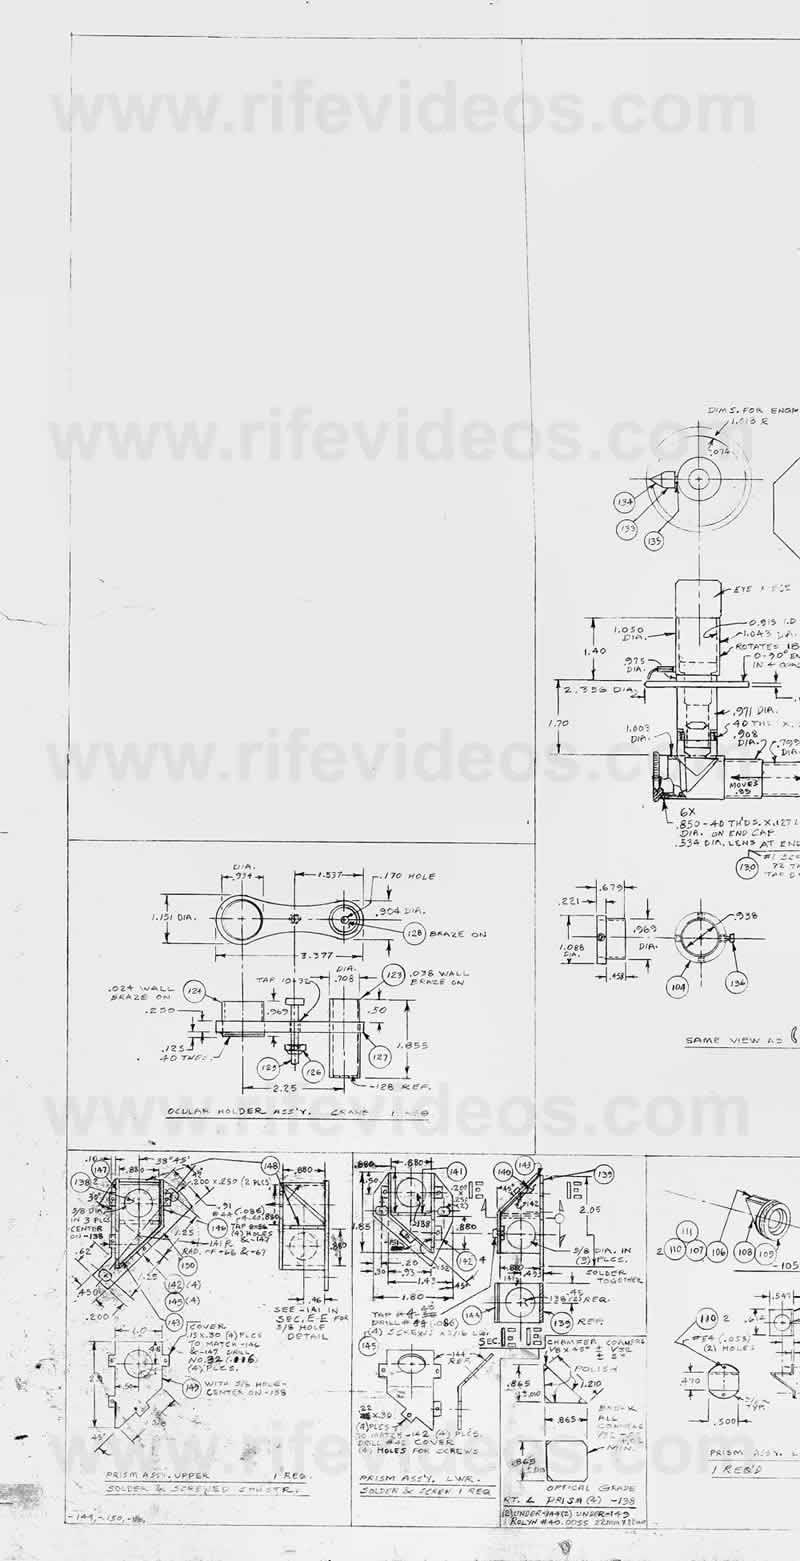 Universal microscope blueprint 1 royal raymond rife pinterest it is the object of this paper to describe some of the principles used in the new rife microscope in obtaining its peak of magnification and source of malvernweather Choice Image